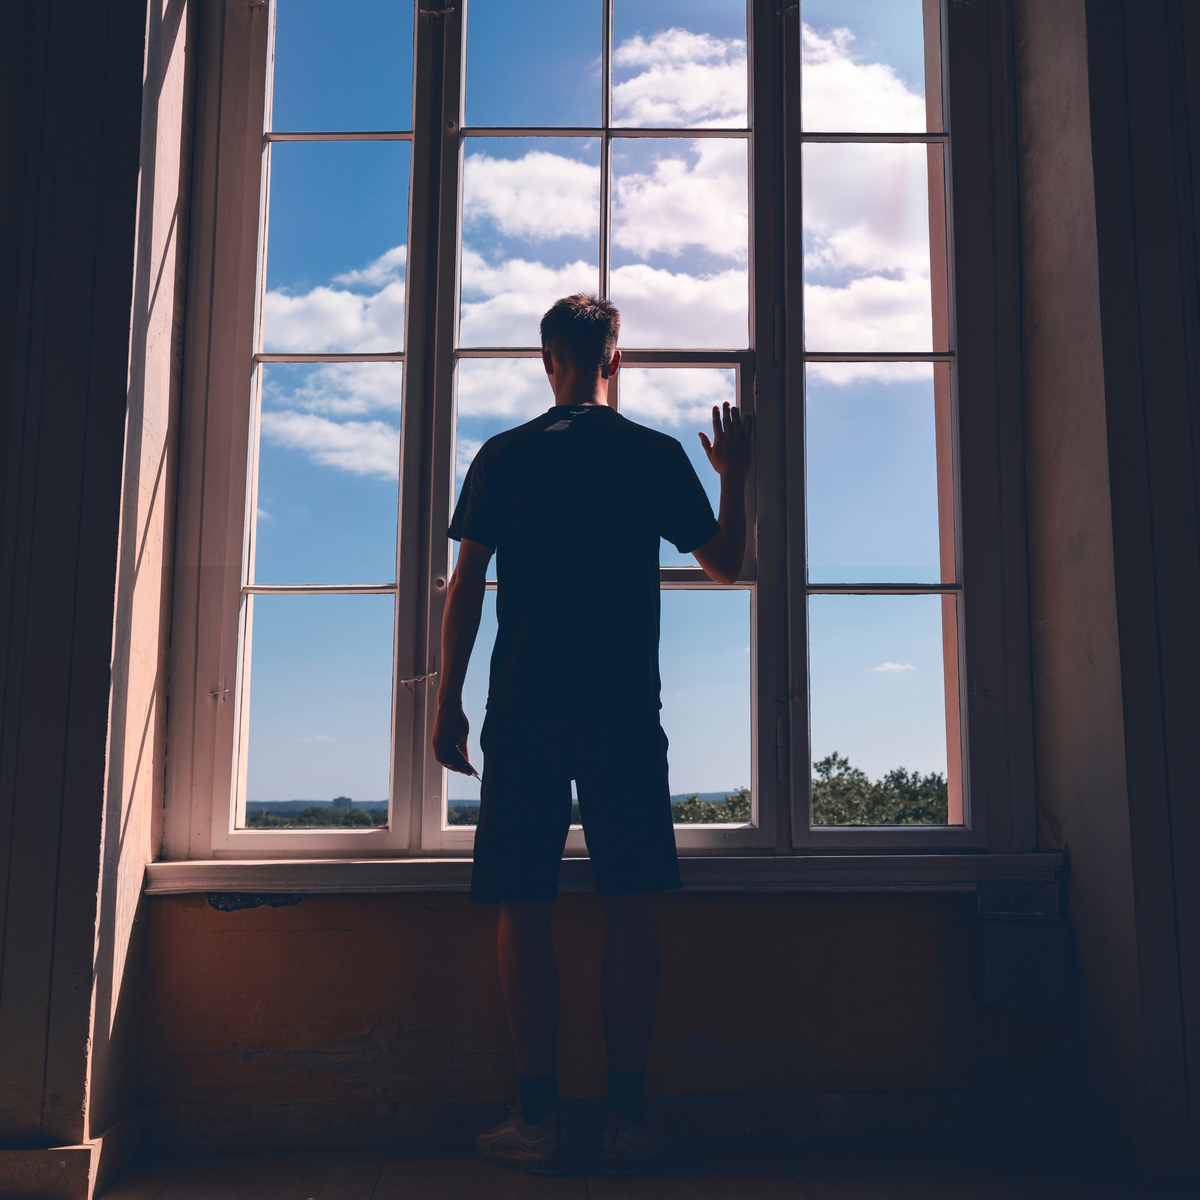 BOY, WINDOW, CLOUD